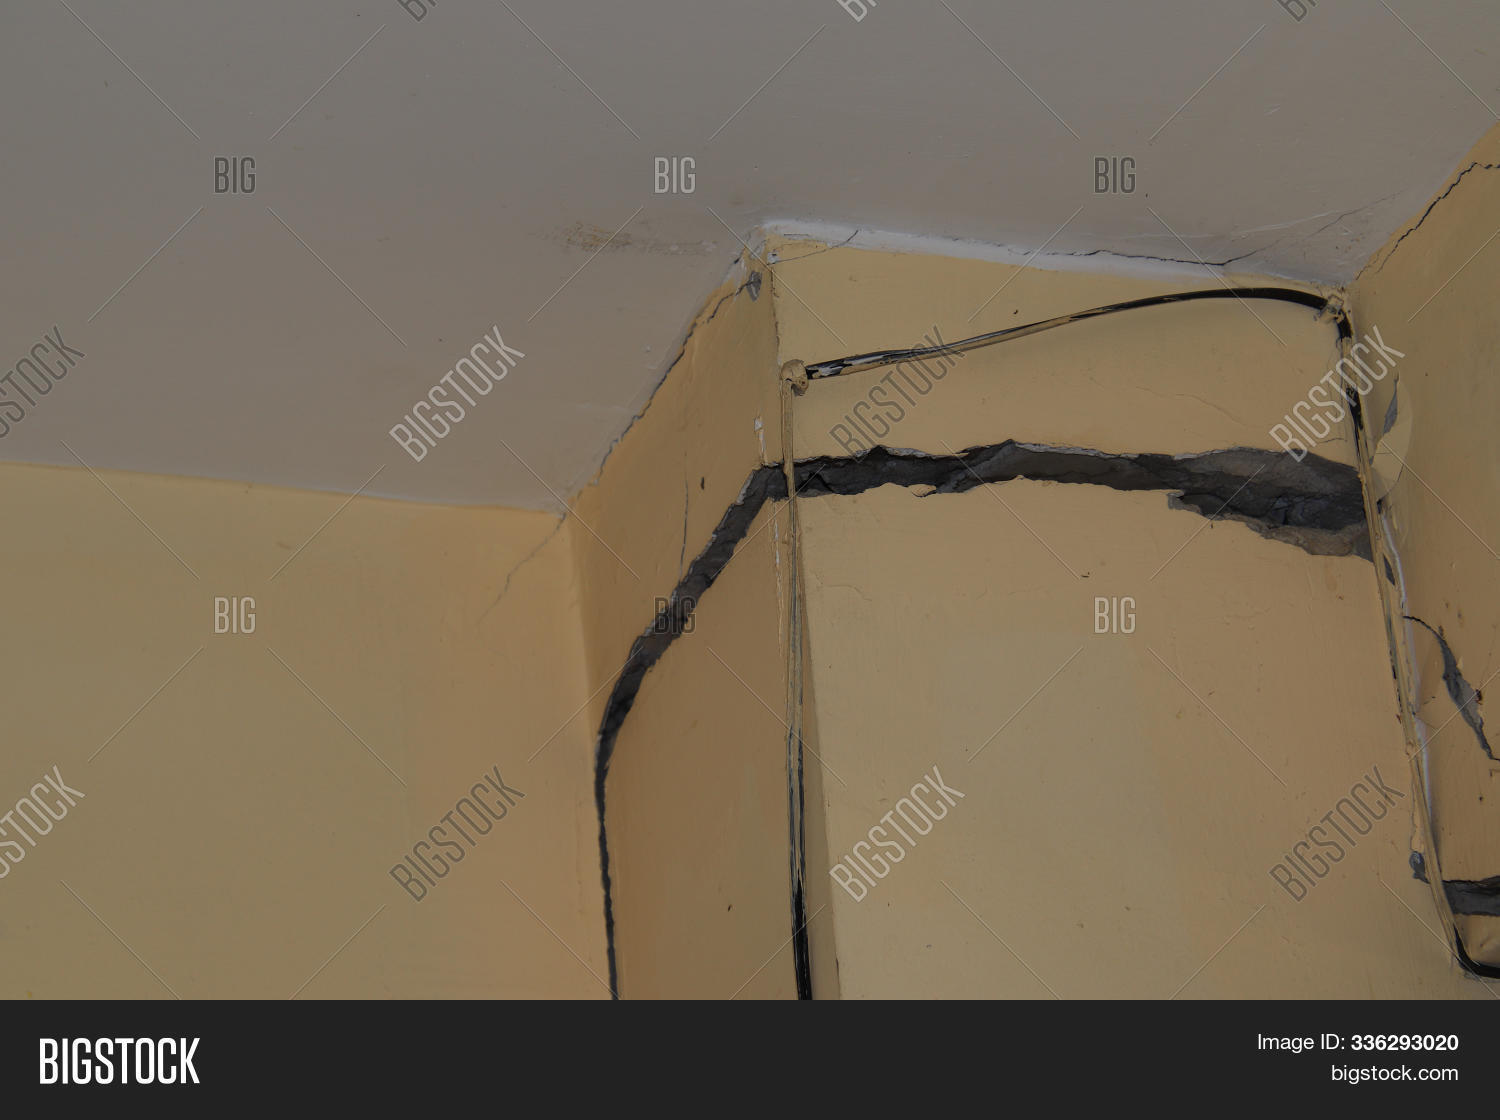 abstract,accident,architecture,backdrop,background,beam,broken,building,caution,cement,city,closeup,concrete,construction,crack,damage,danger,dangerous,destruction,dirty,earthquake,effect,engineer,engineering,floor,gray,grunge,home,house,industrial,iron,material,old,outdoor,pattern,pole,repair,rough,rust,rusty,salt,sea,site,steel,stone,structure,surface,texture,wall,white